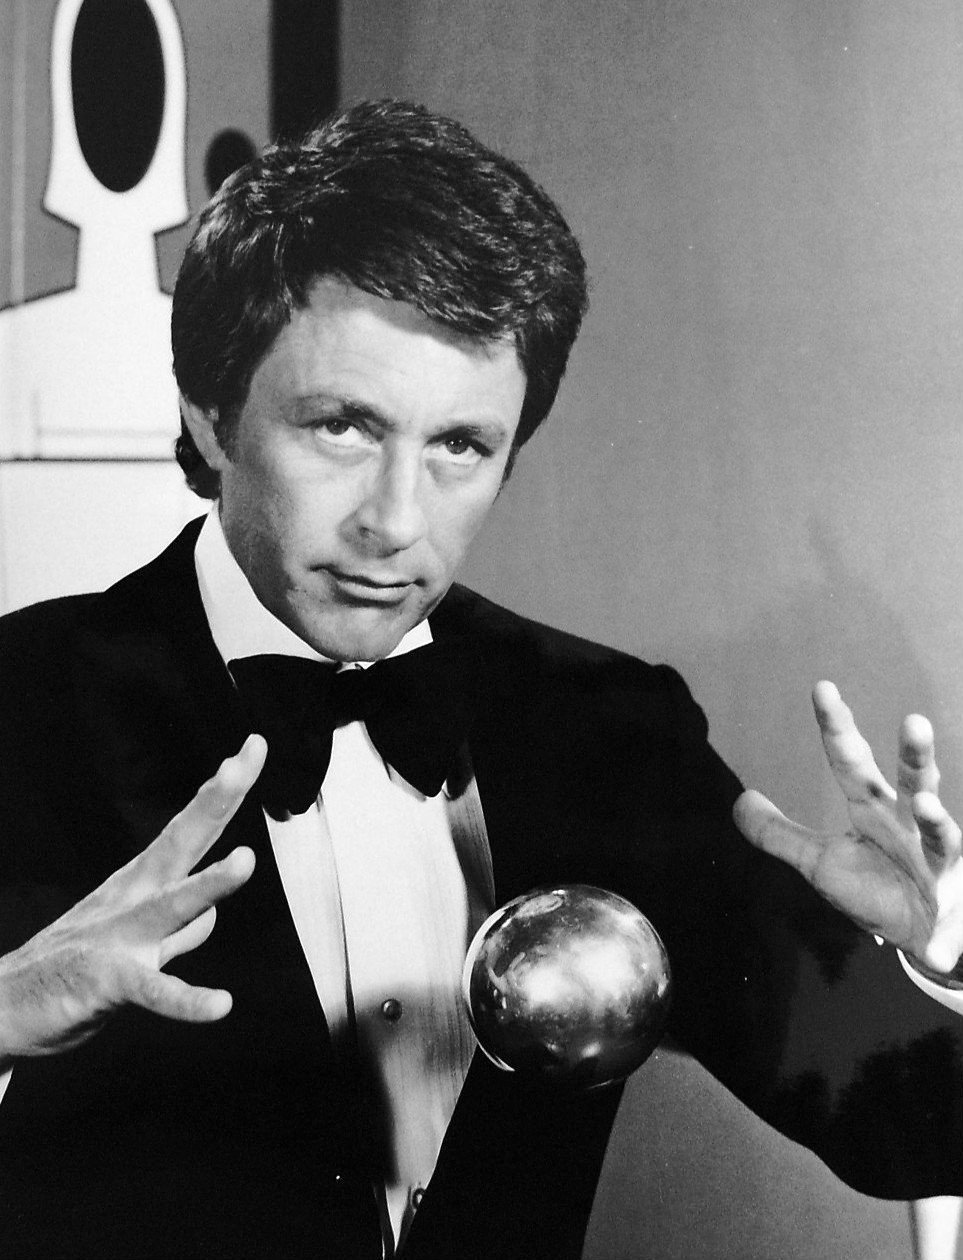 """Bill Bixby as Tony Blake from the television program """"The Magician"""" in 1973. 